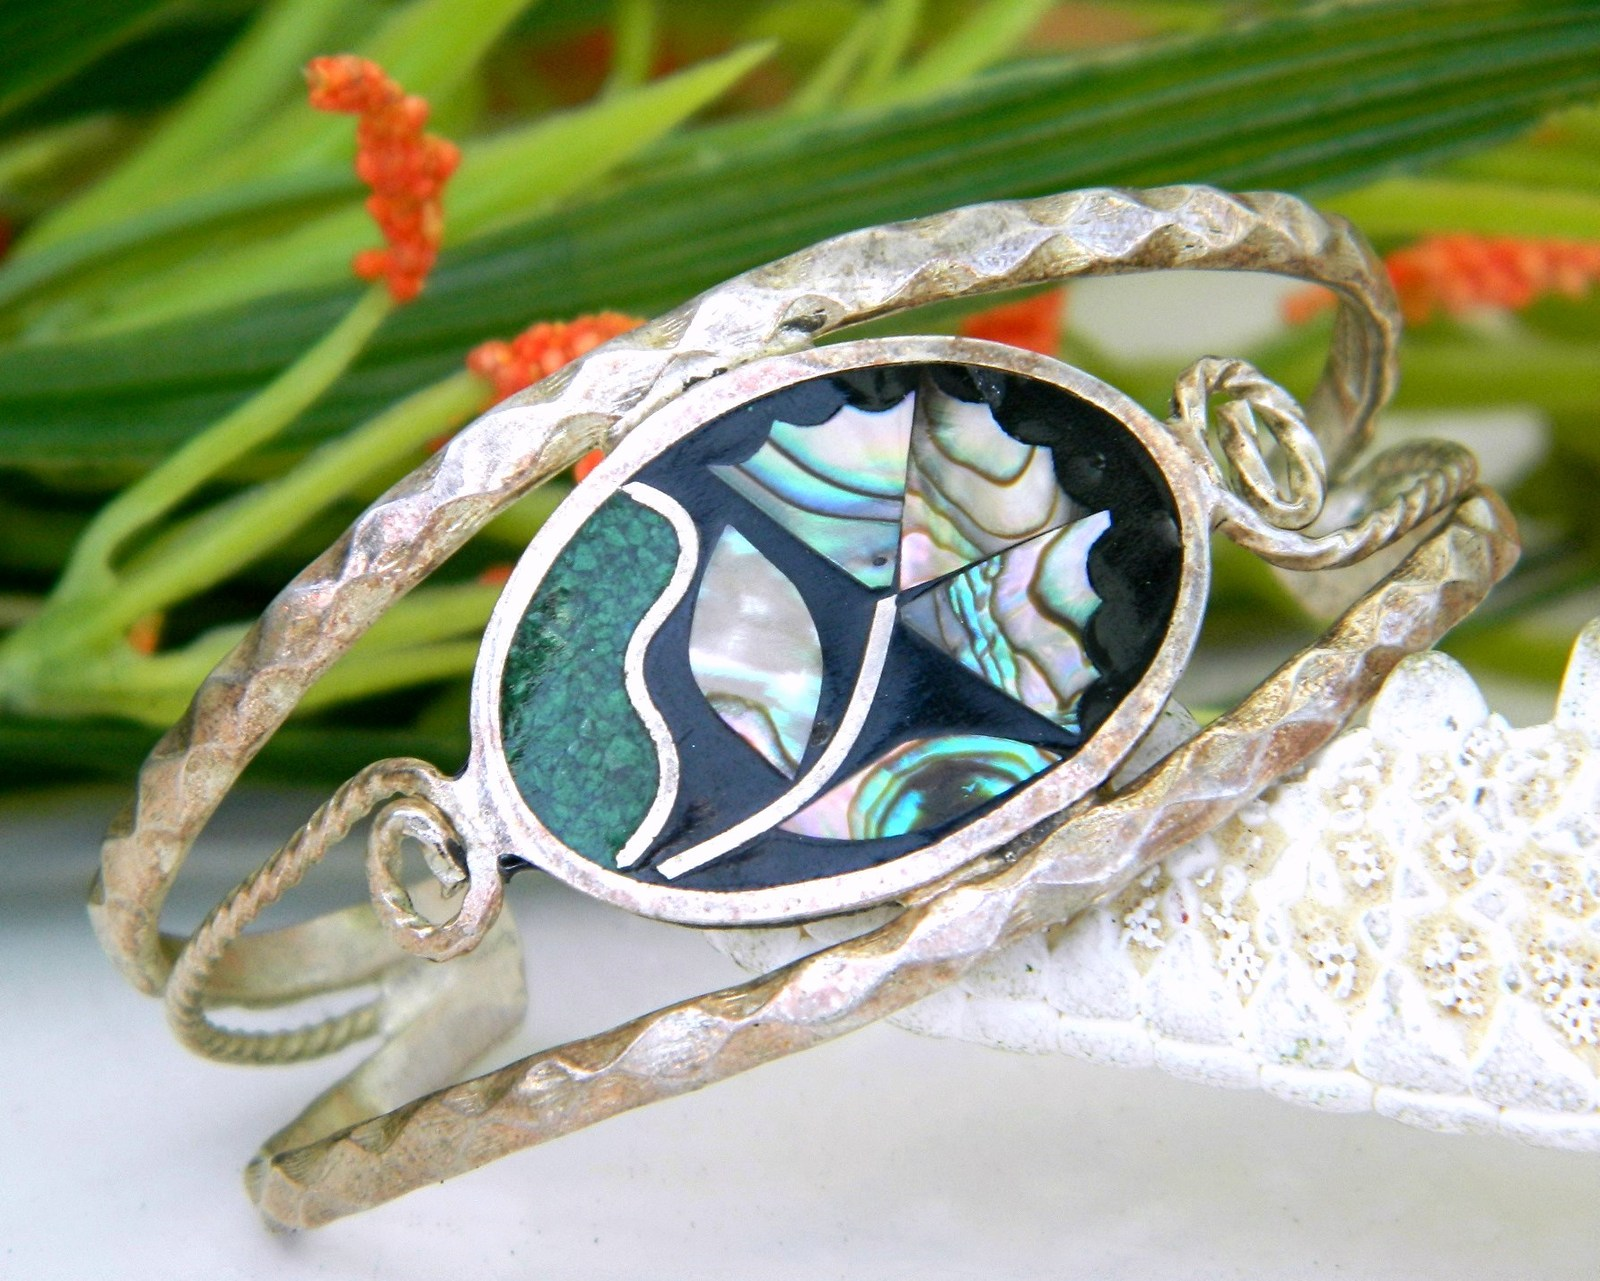 Vintage Mexico Inlay Cuff Bracelet Abalone Flower Inlaid Child